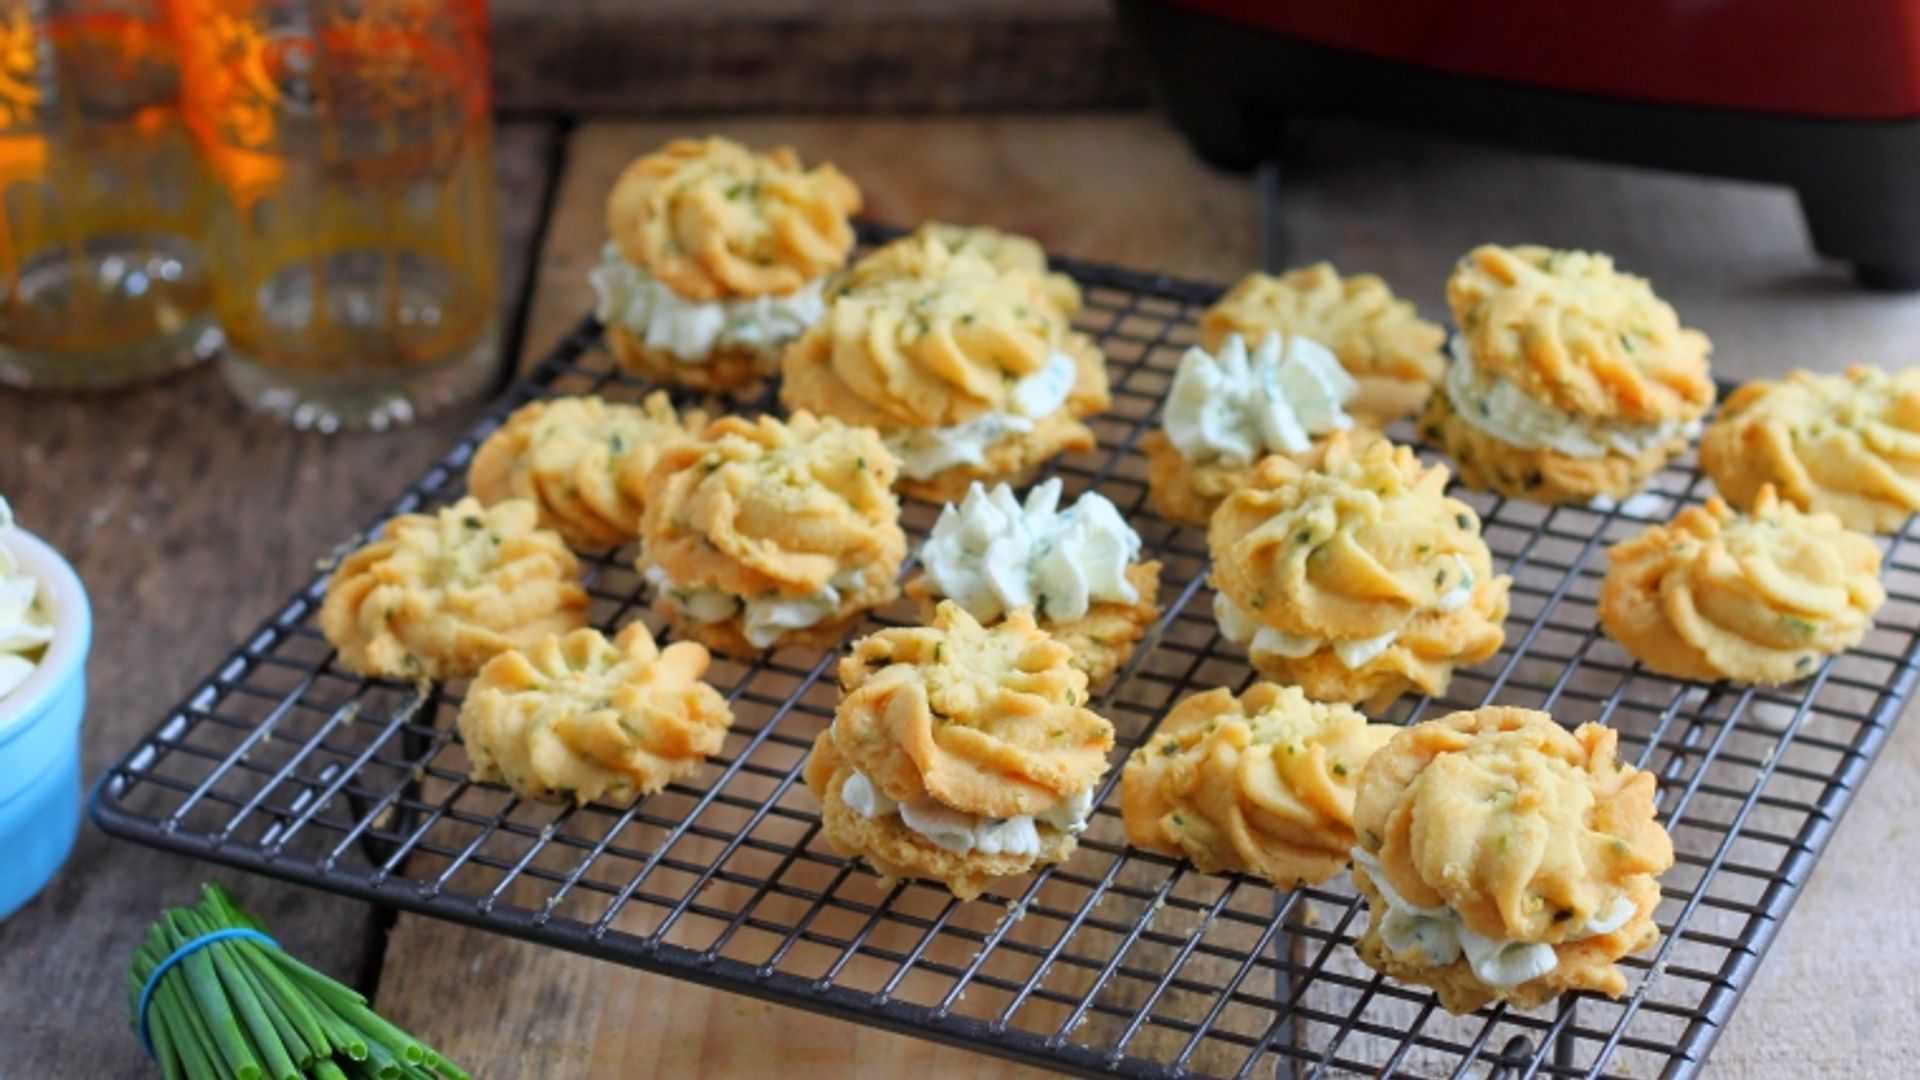 Cheese And Chive Viennese Whirls A Savoury Take On Traditional Viennese Whirls With A Creamy